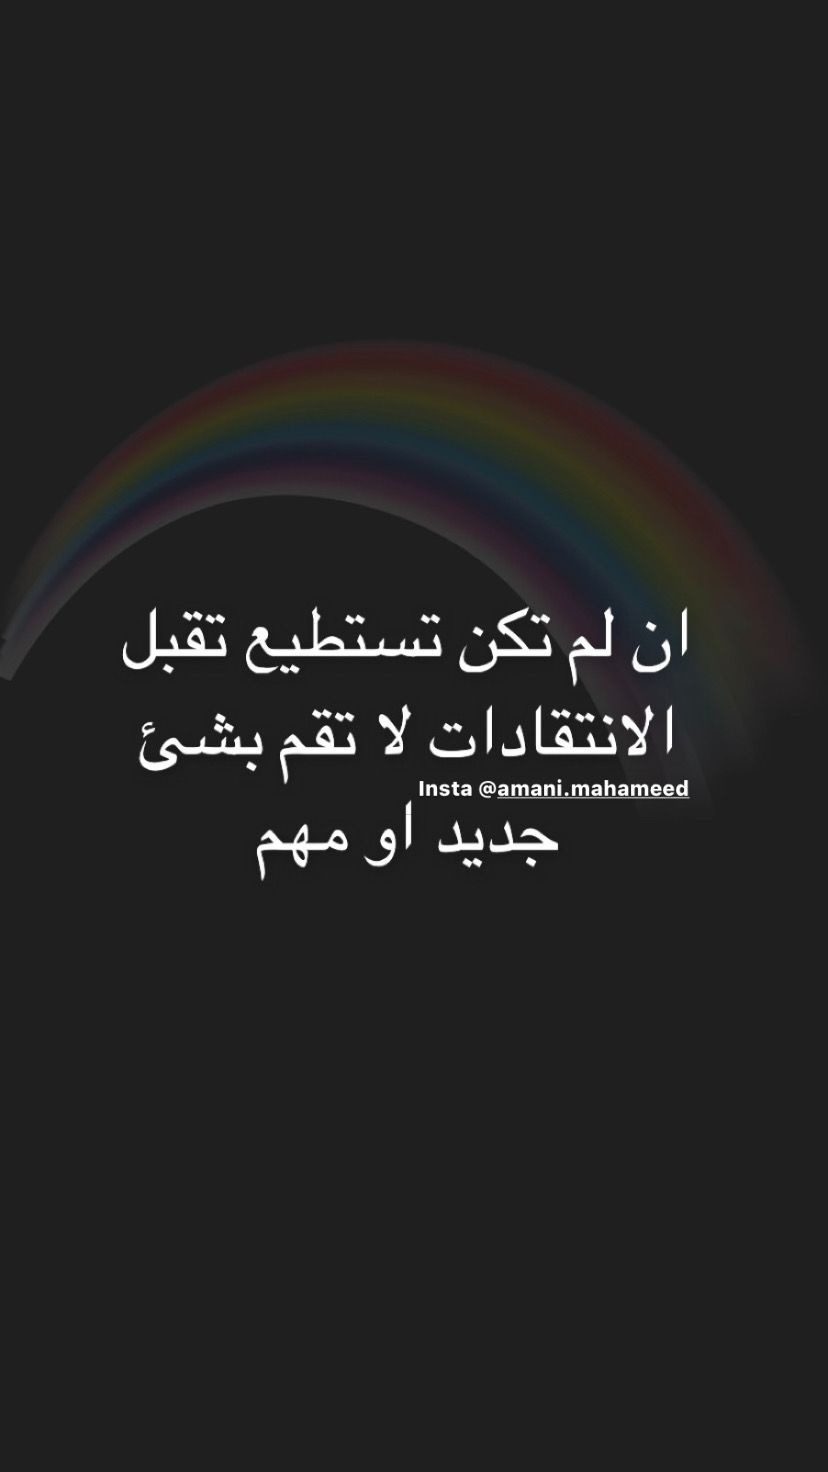 Pin By Psy Amani Mahameed On رسائل ايجابية Insta